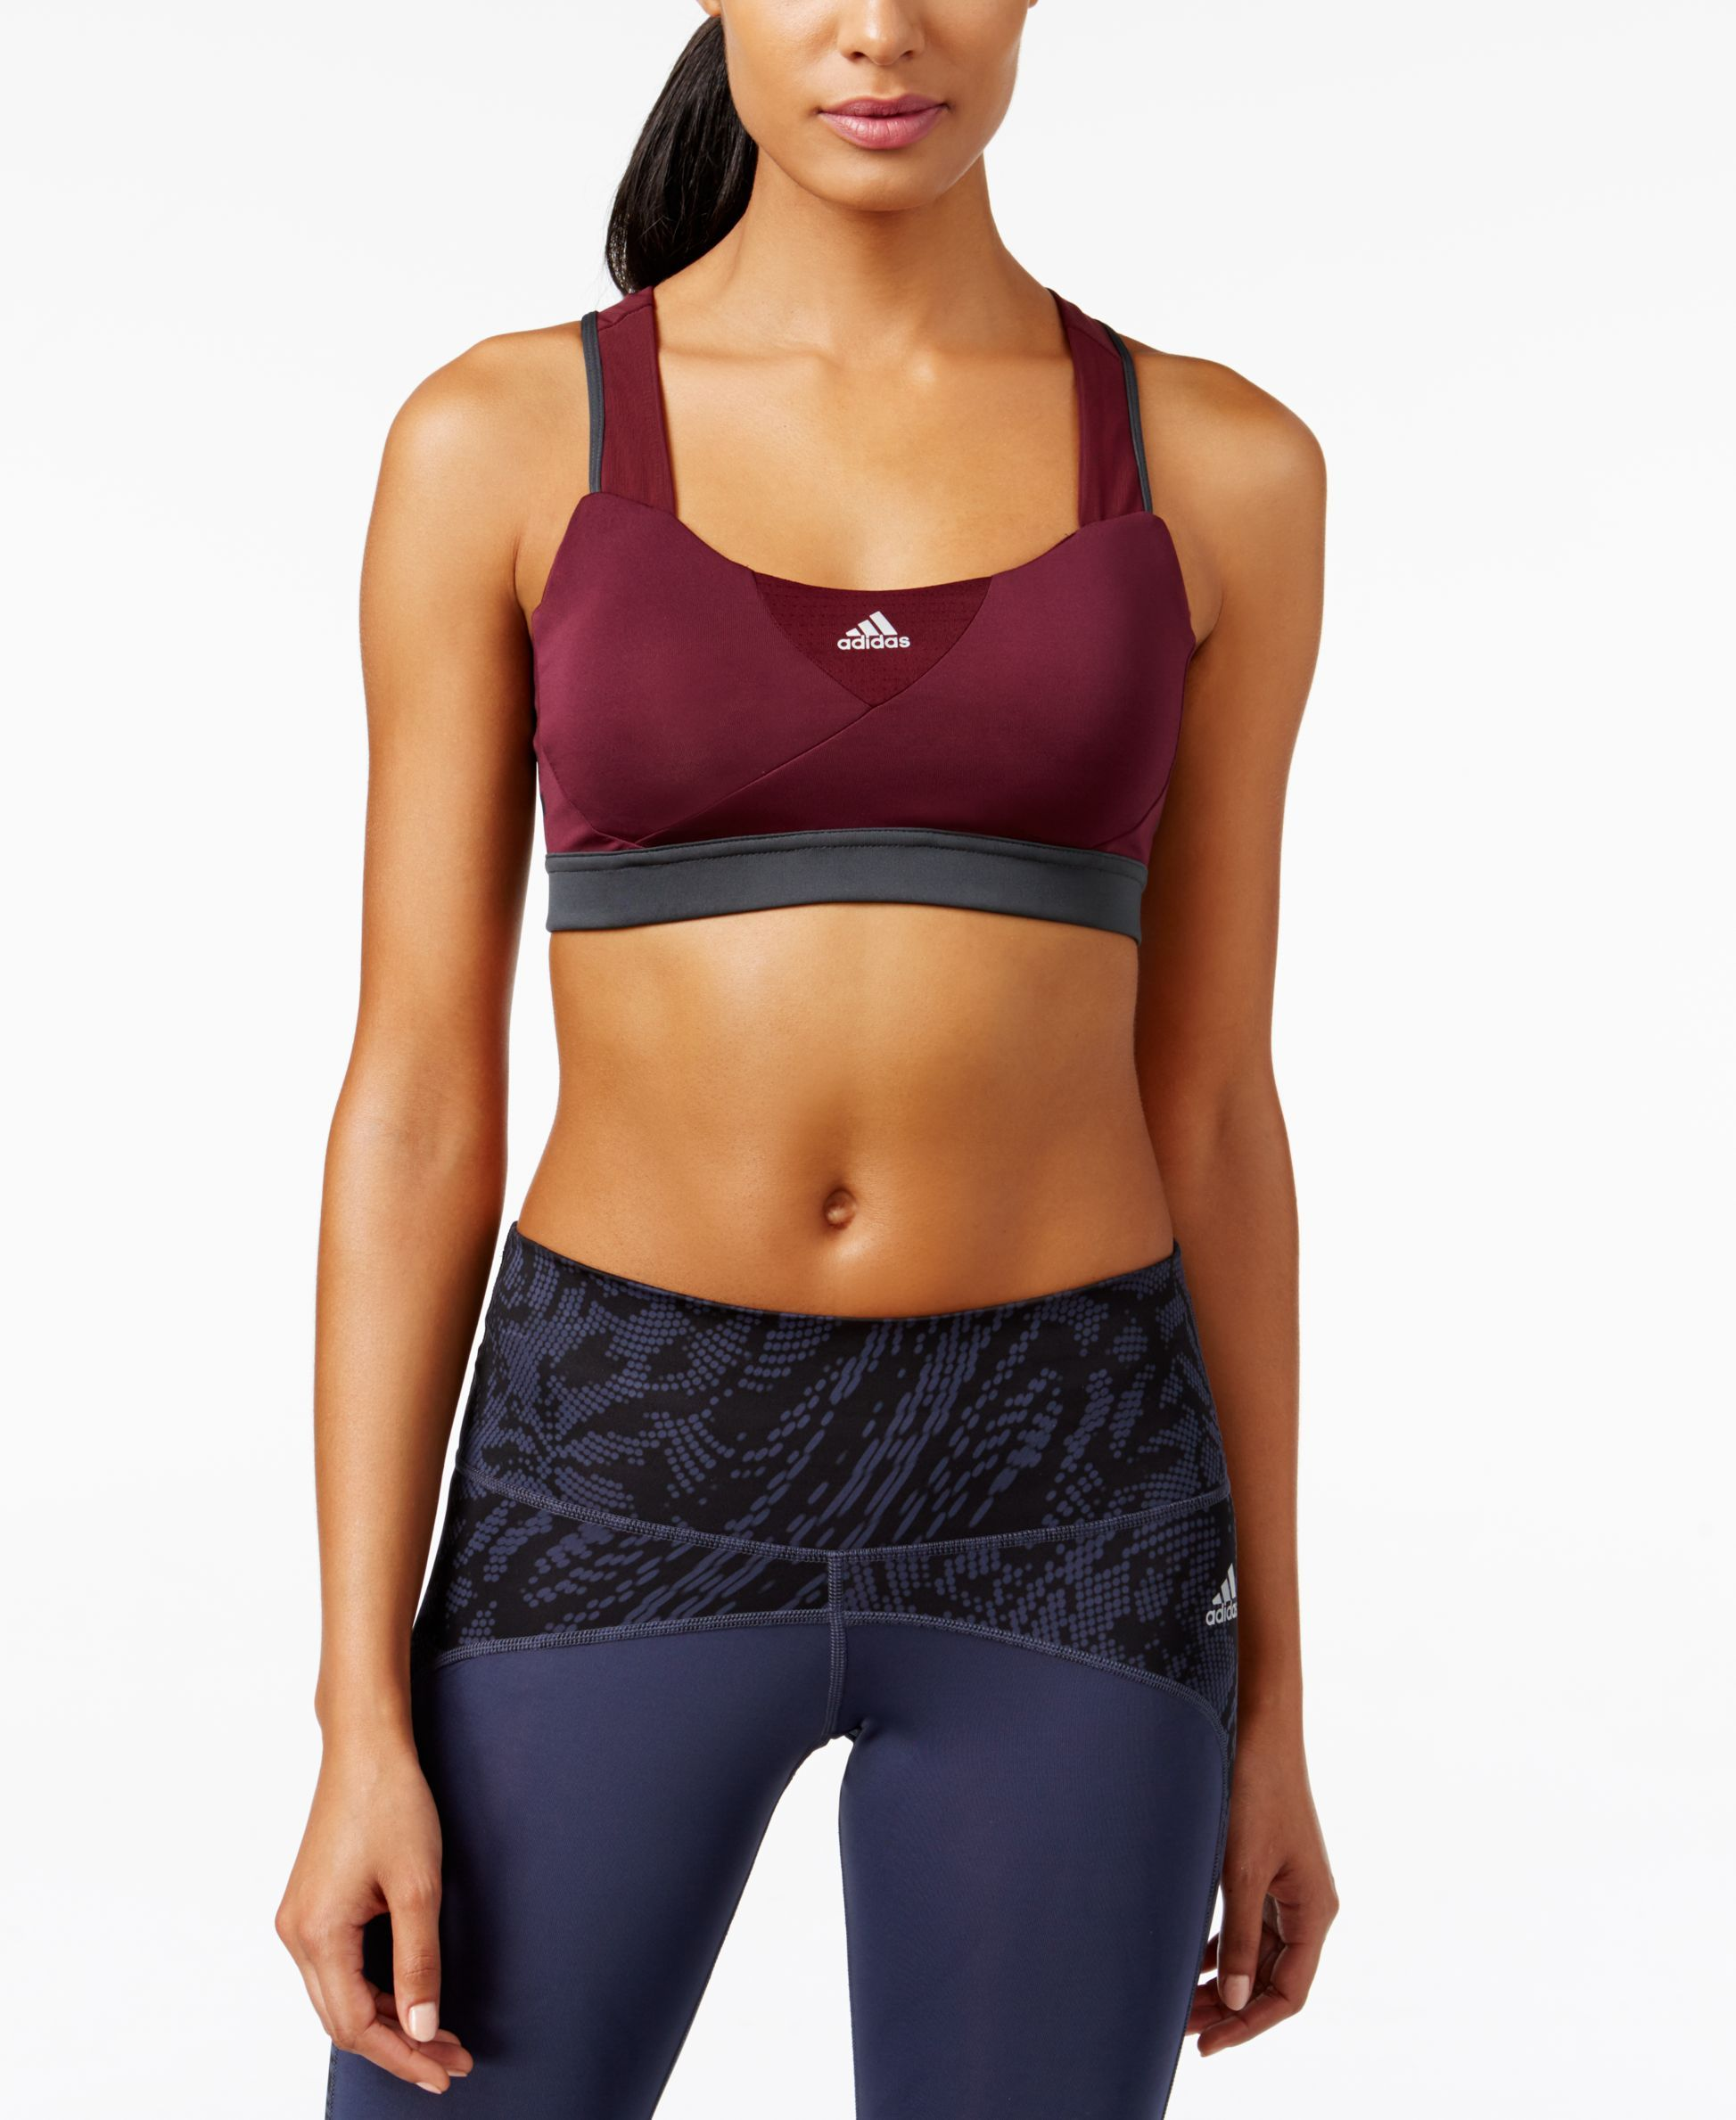 adidas climacool high support sports bra